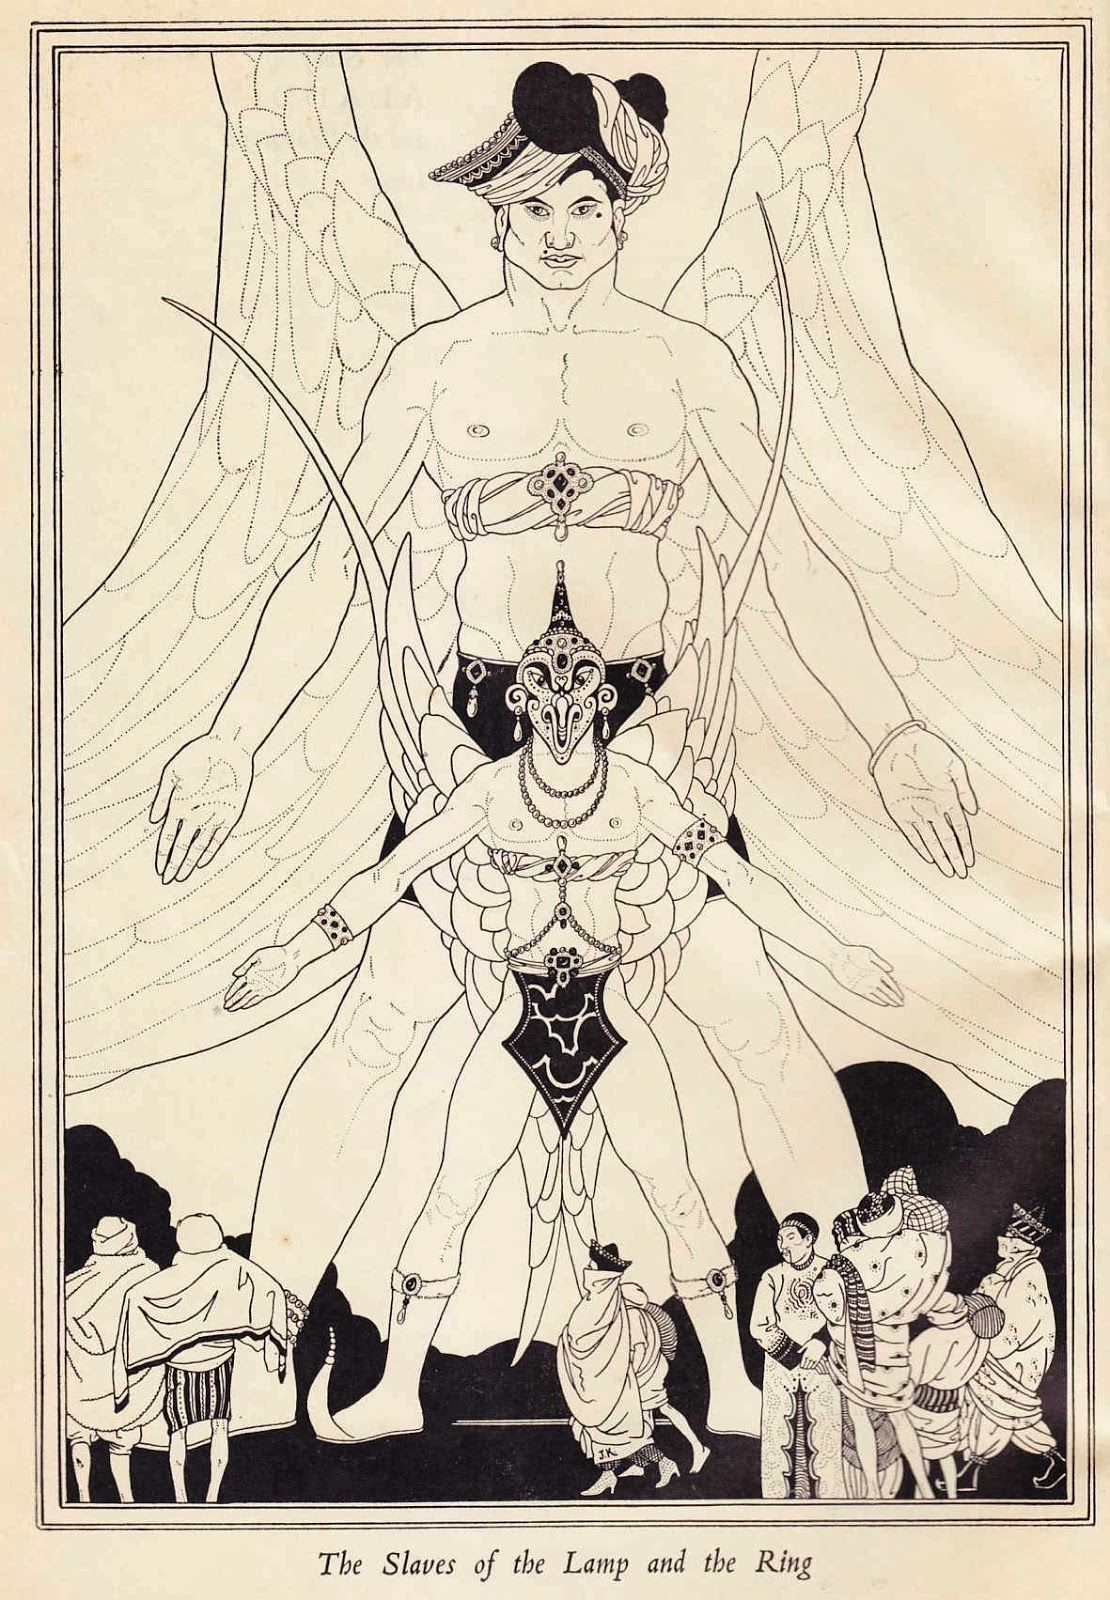 """John Kettelwell - The Slaves of the Lamp and the Ring - Illustration from """"The Story of Aladdin and the Wonderful Lamp,"""" 1928jpg"""